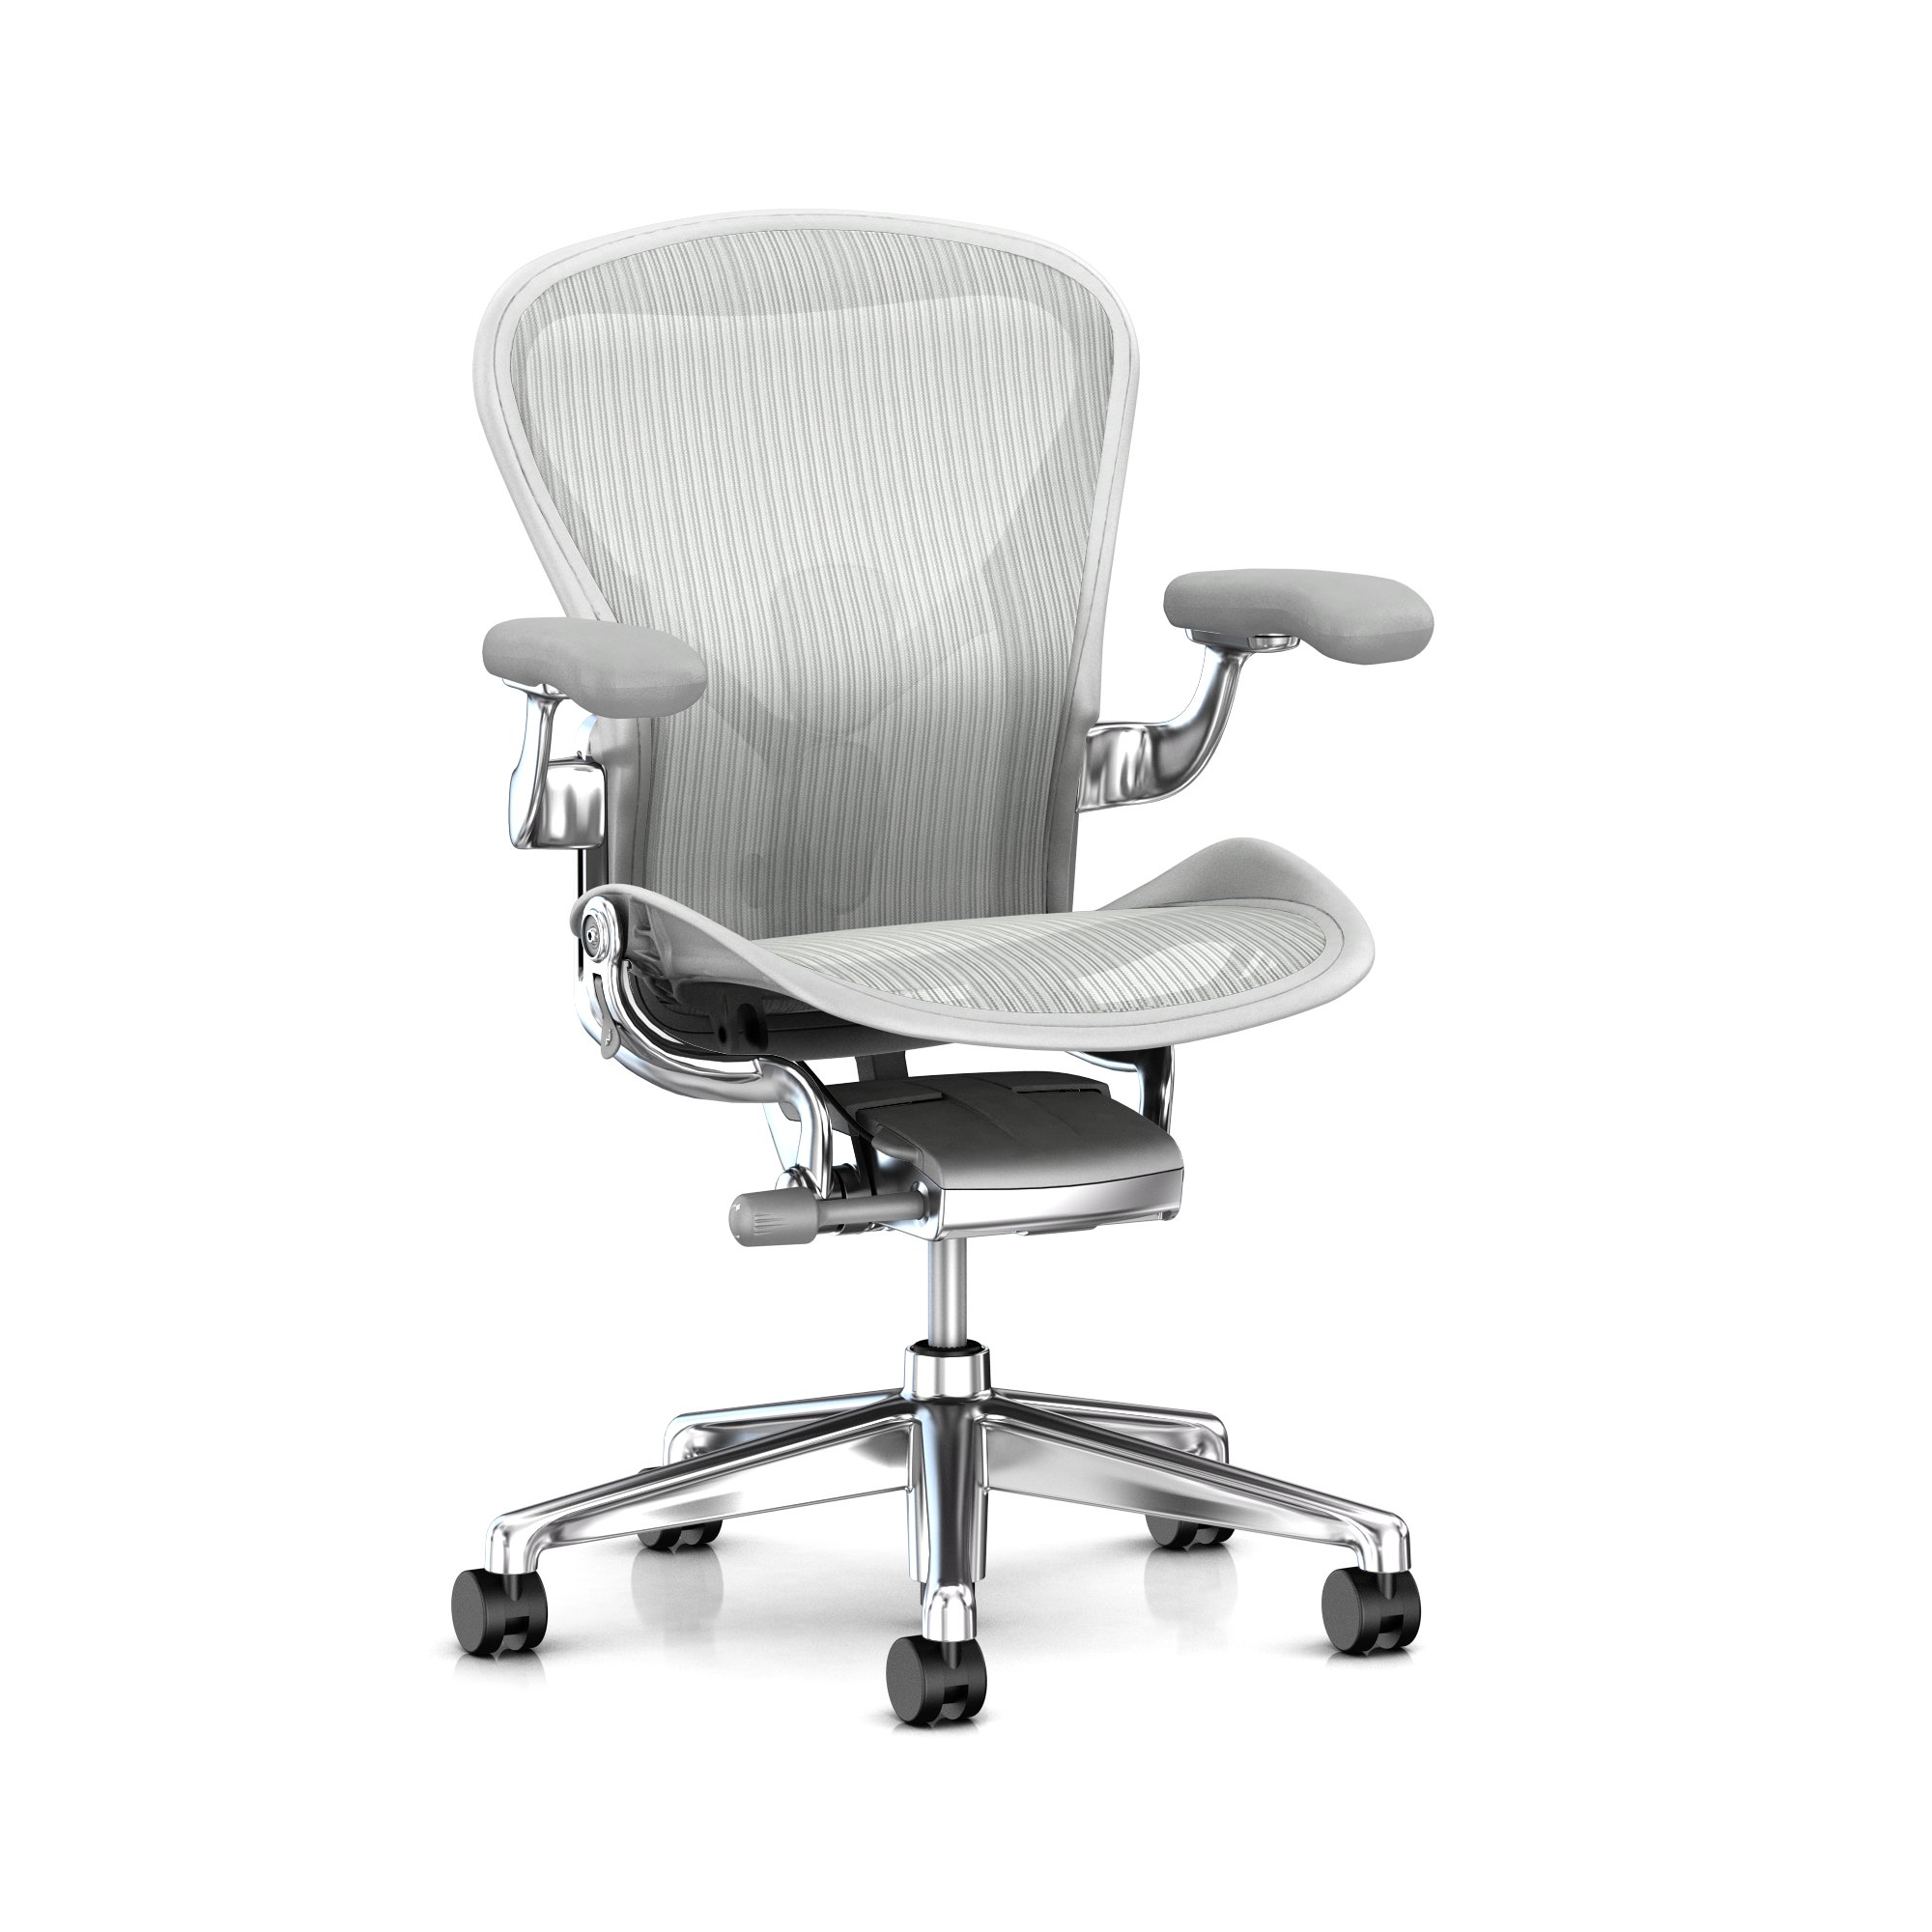 535698c83b6 Herman Miller Aeron® Chair - Fully Loaded